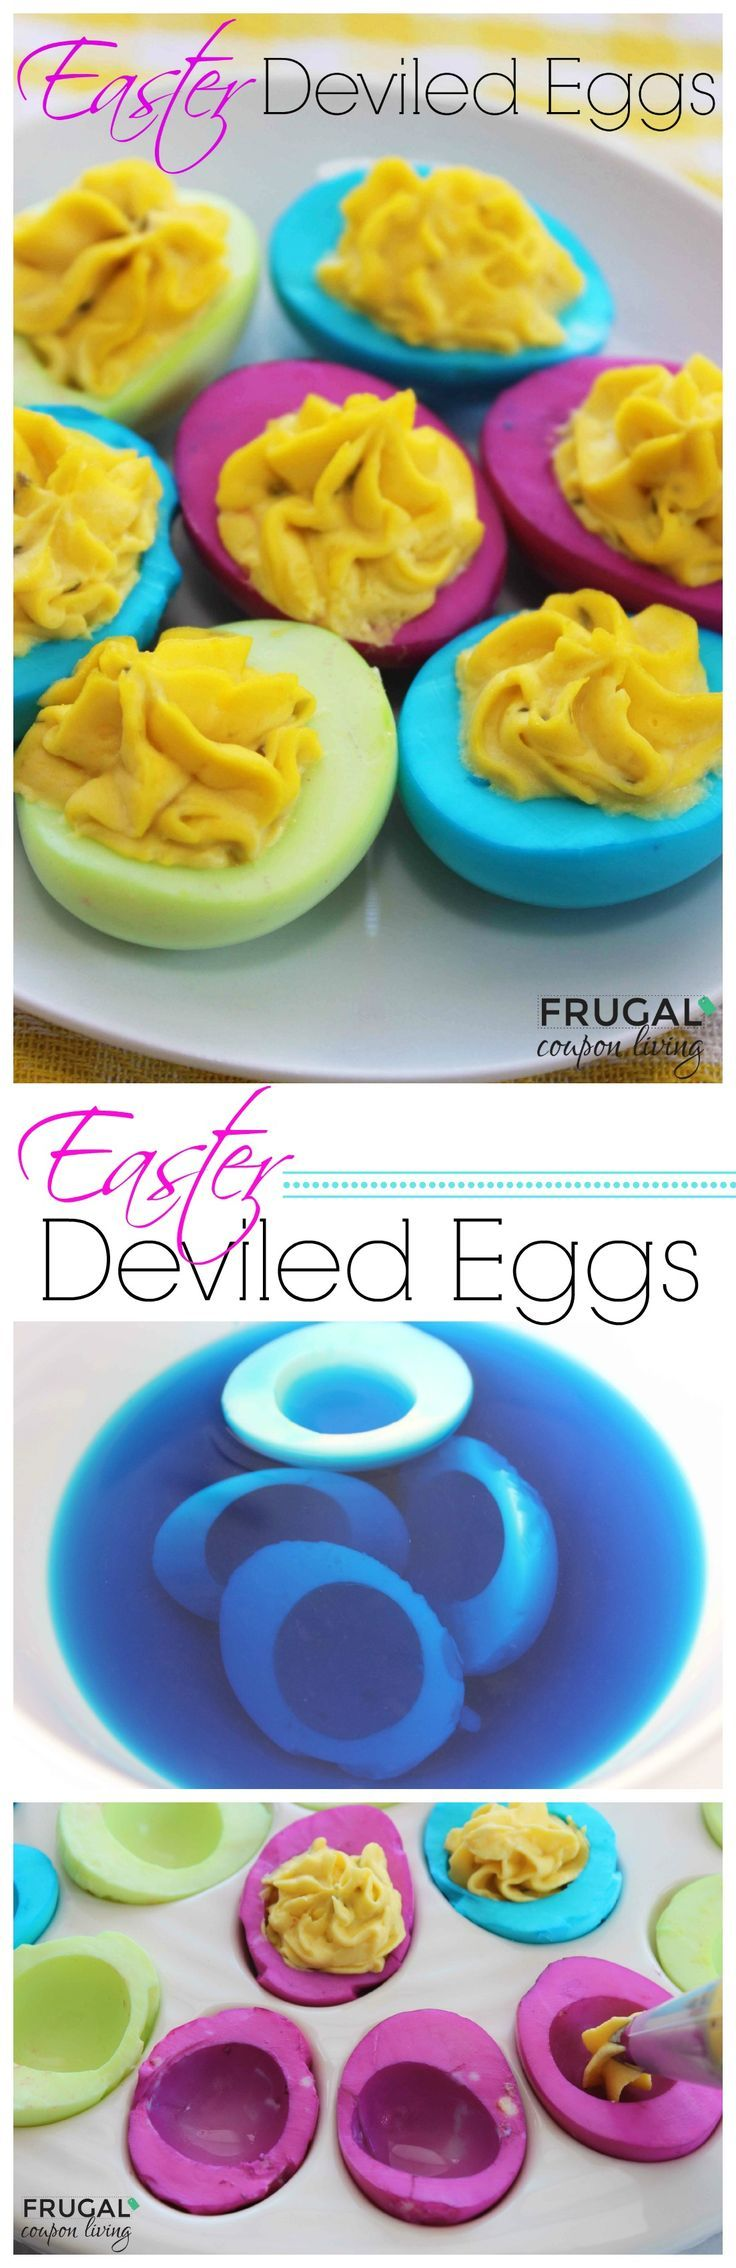 Easter Deviled Eggs - Tutorial on how to color the egg whites of your hard boile...